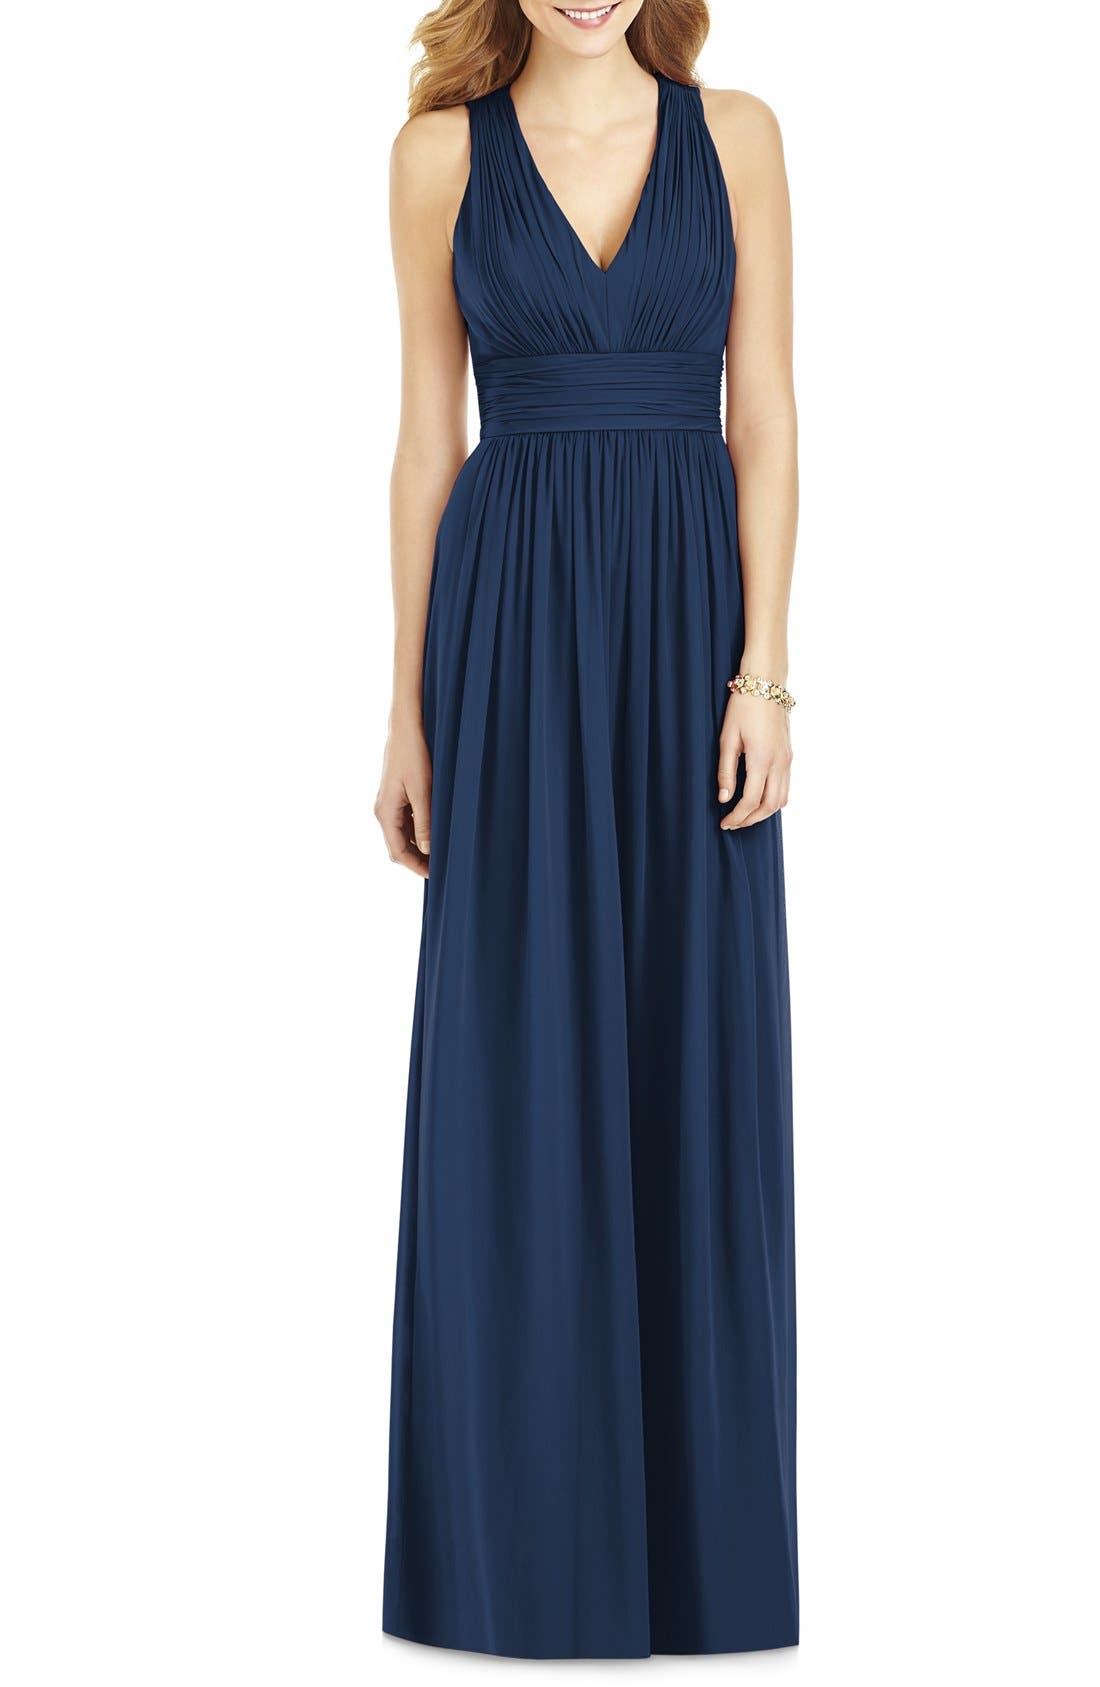 Crisscross Back Ruched Chiffon V-Neck Gown,                             Main thumbnail 1, color,                             405